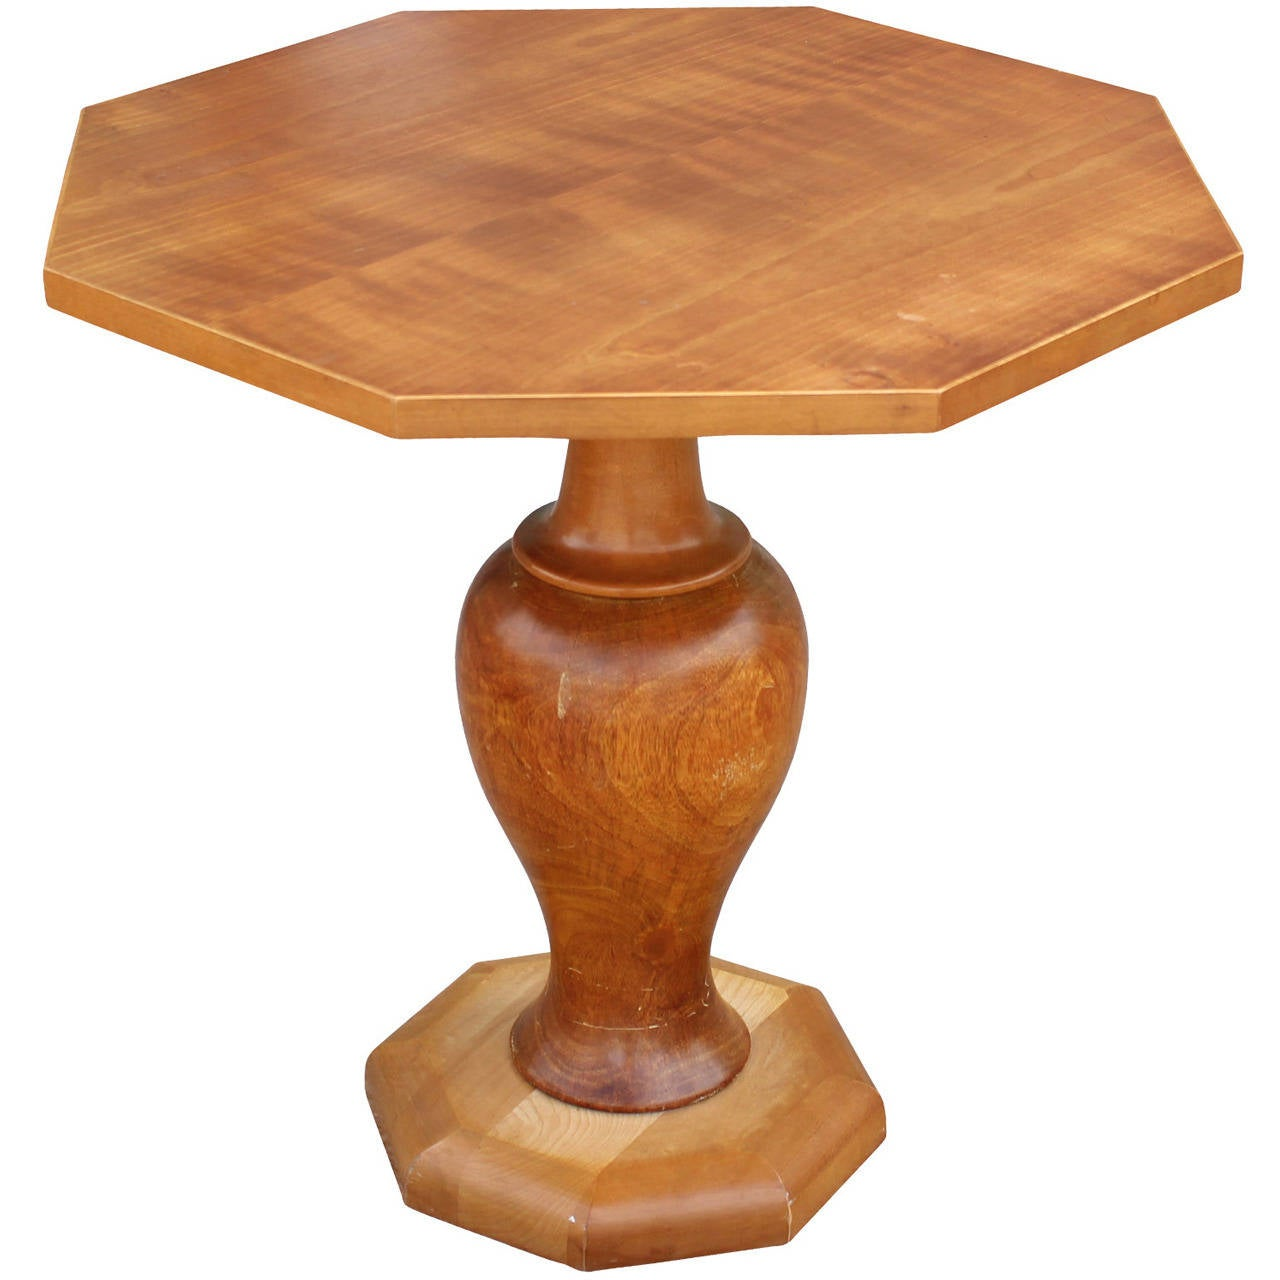 Octagonal Maple Side Table On A Turned Wood Base For